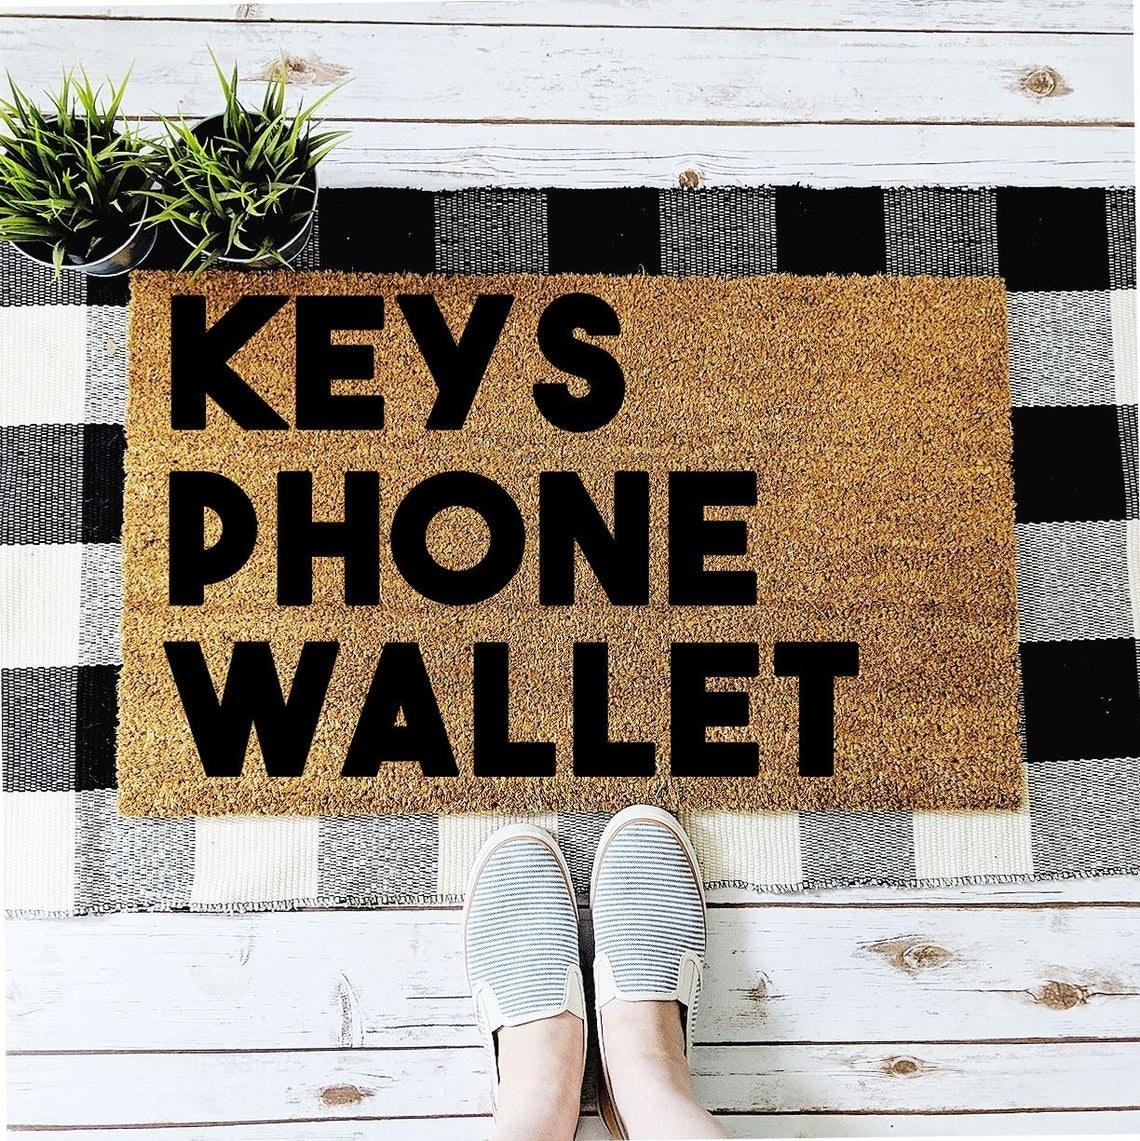 doormat that says keys phone wallet